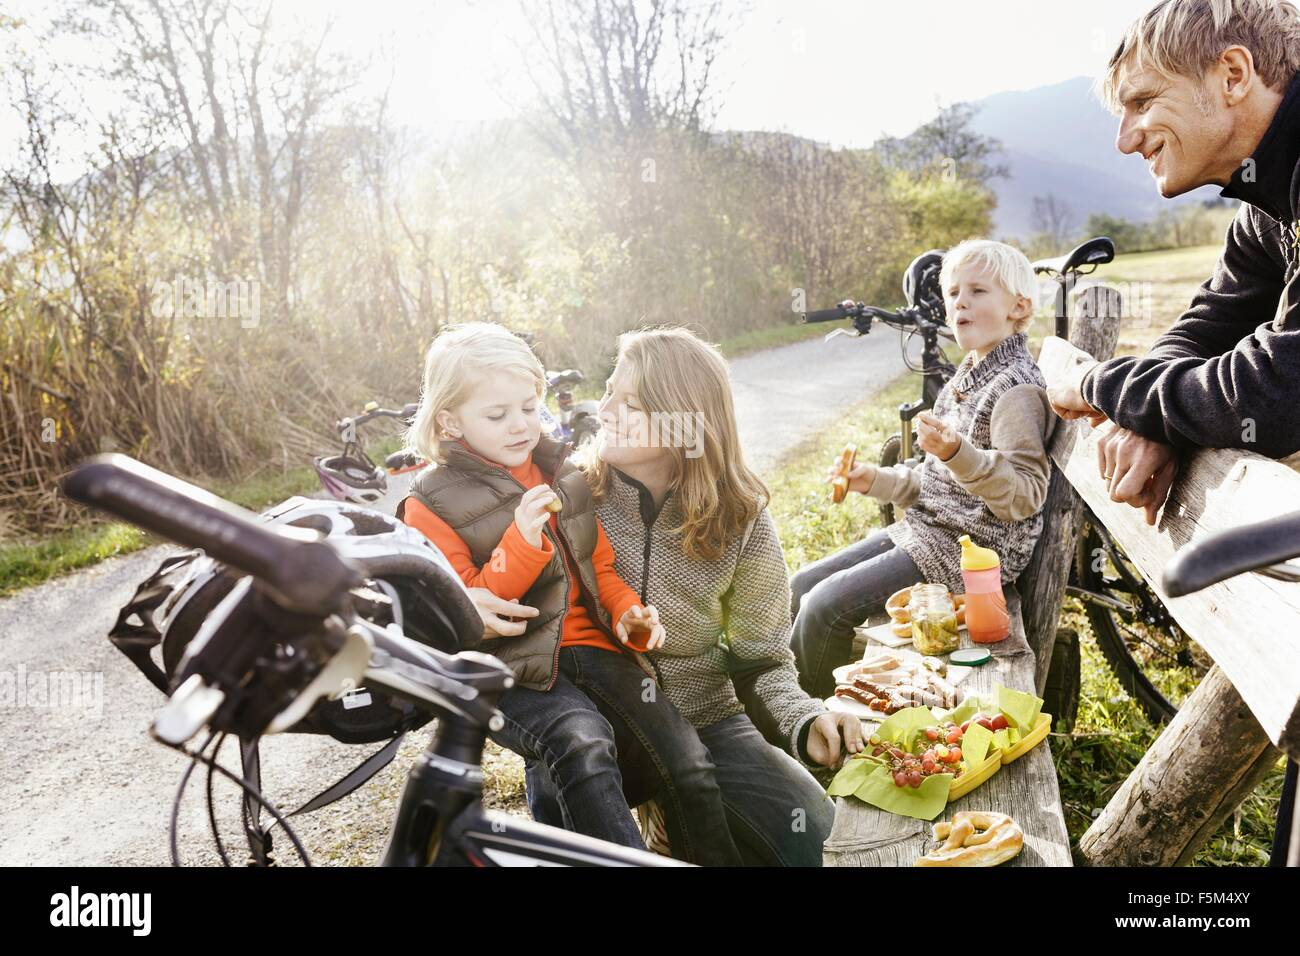 Family with bicycles resting on bench by roadside eating picnic smiling - Stock Image